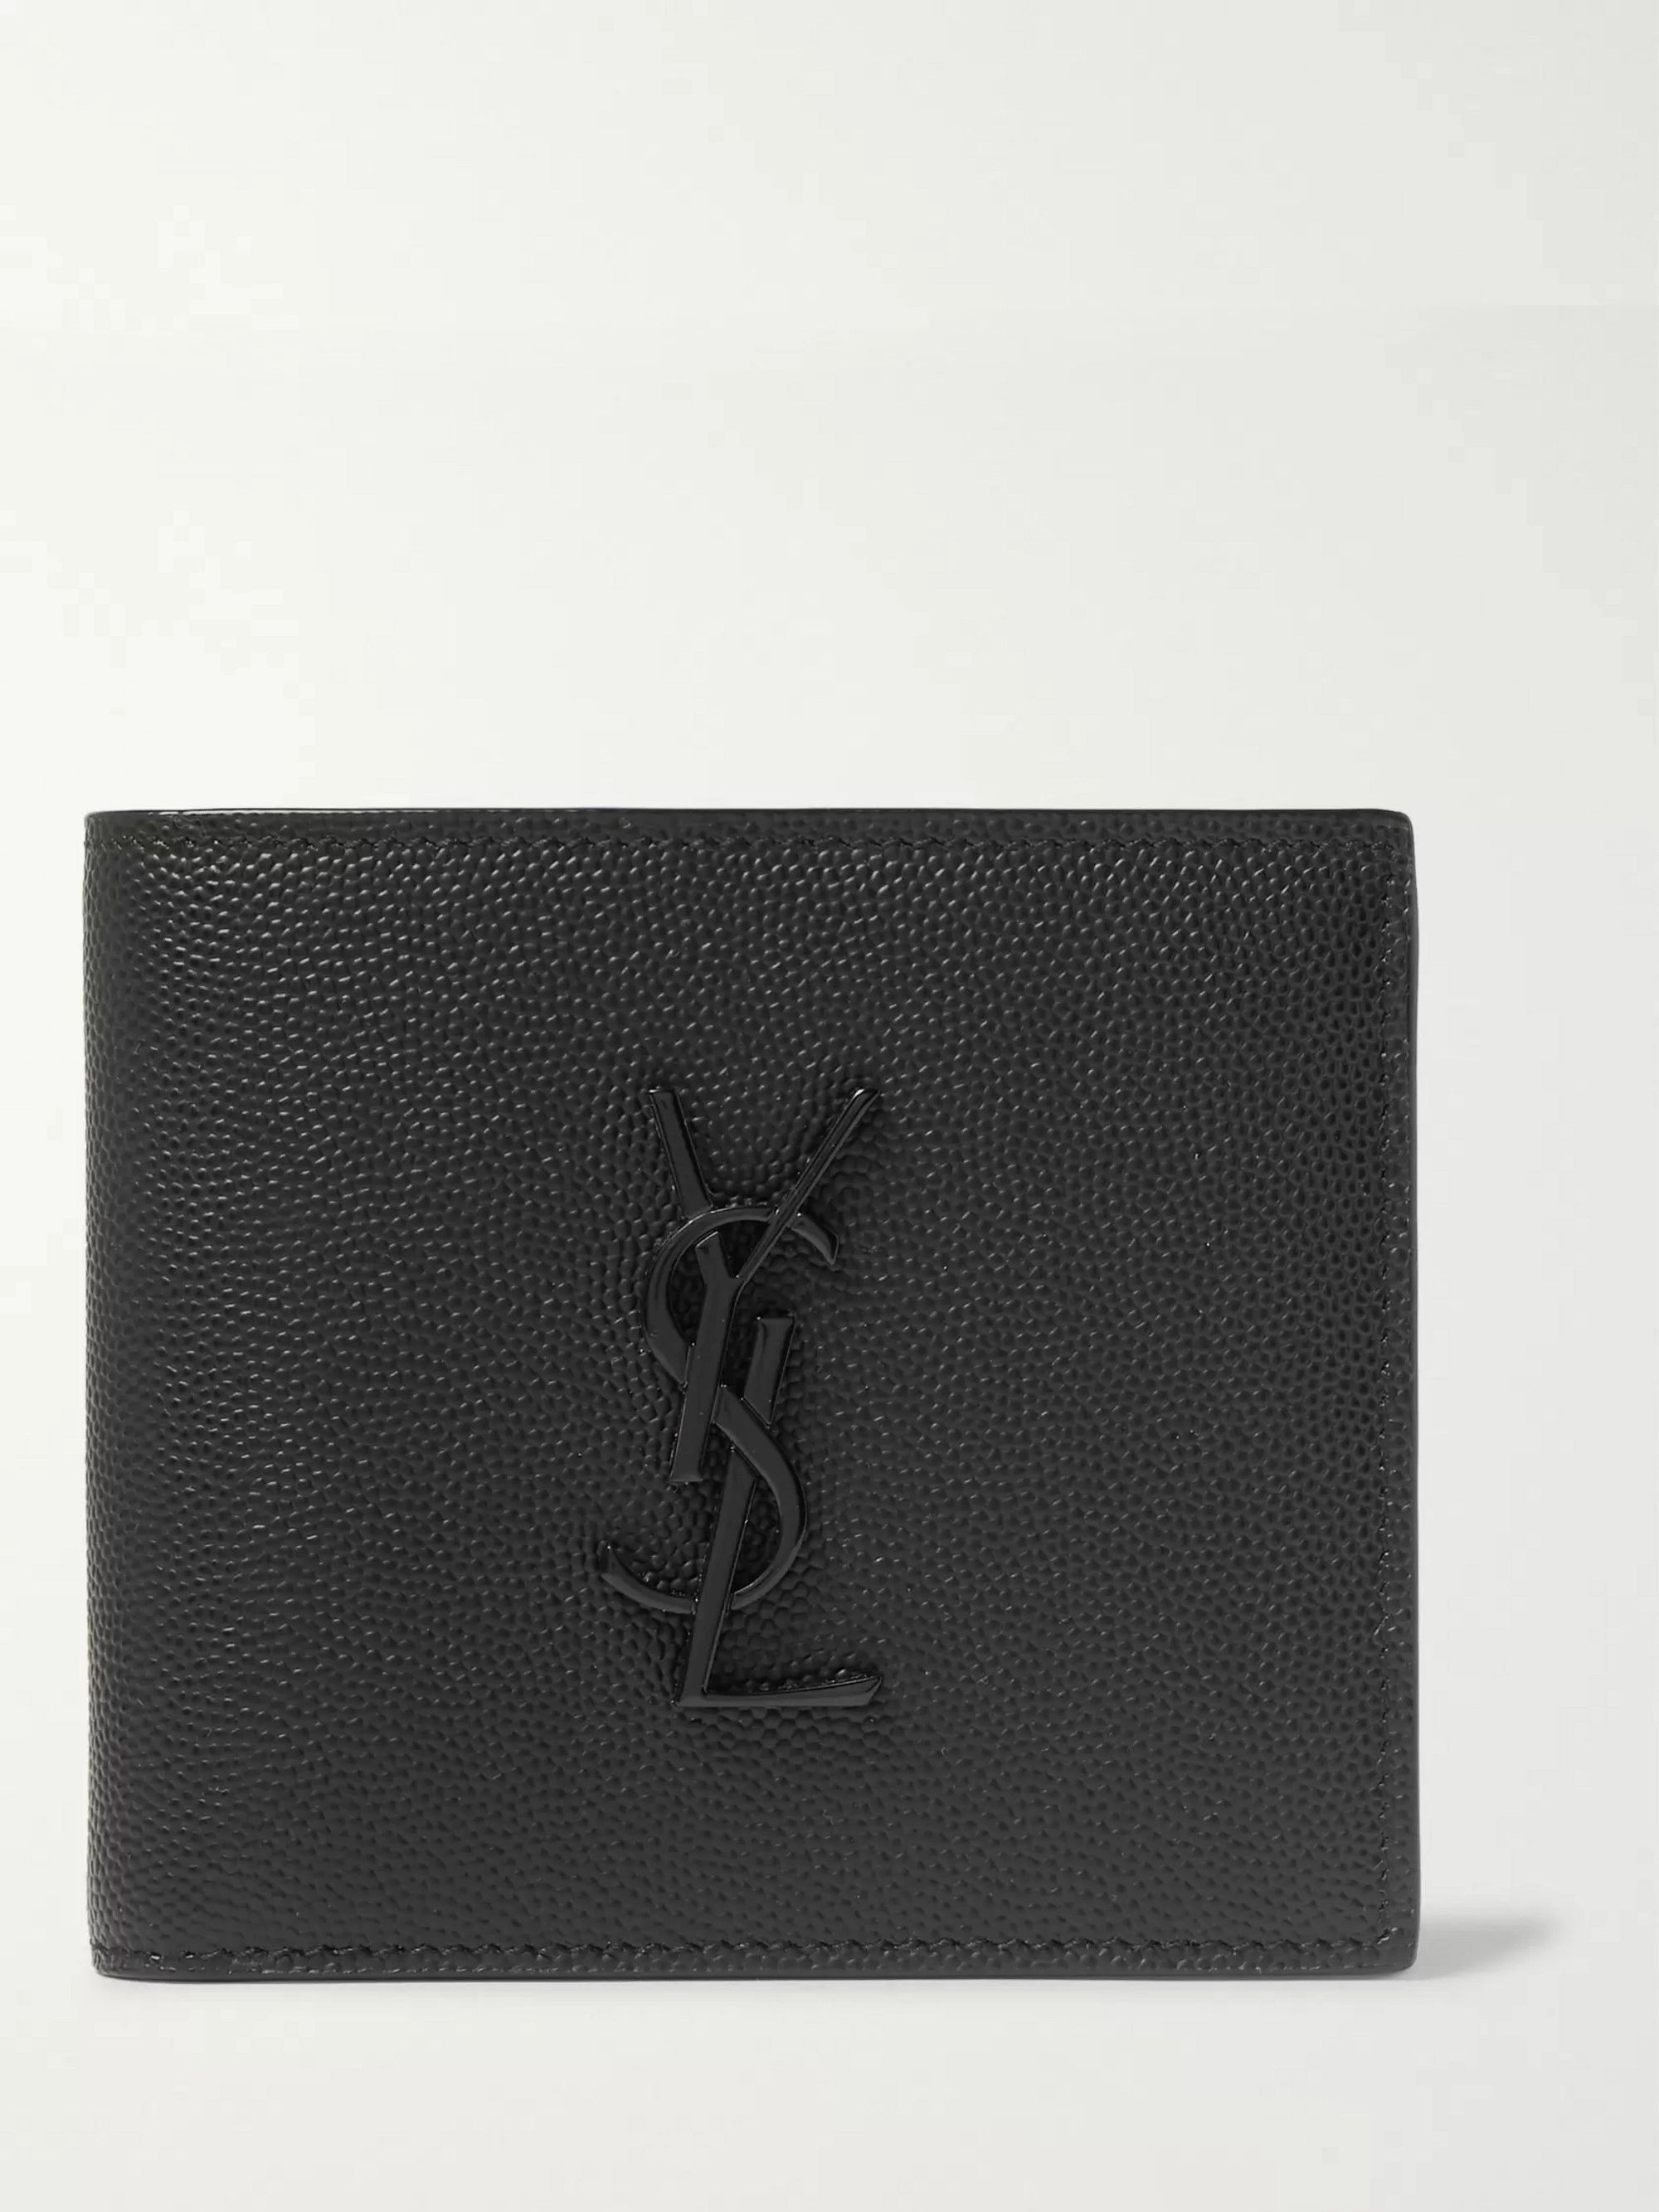 SAINT LAURENT Logo-Embellished Pebble-Grain Leather Billfold Wallet